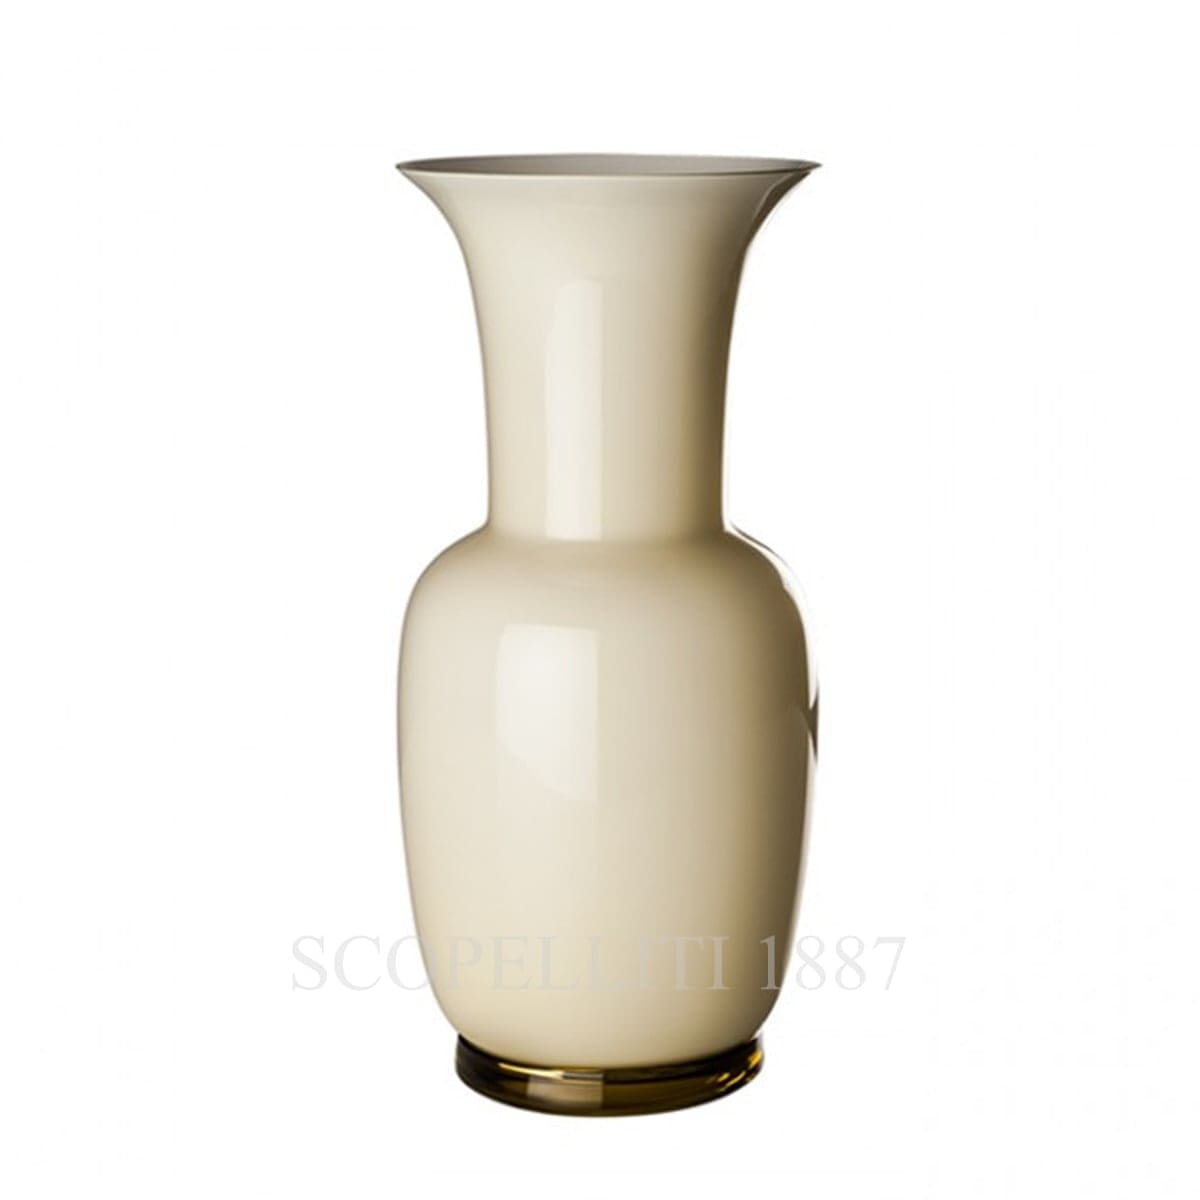 Venini Opalino Vase large straw yellow 706.24